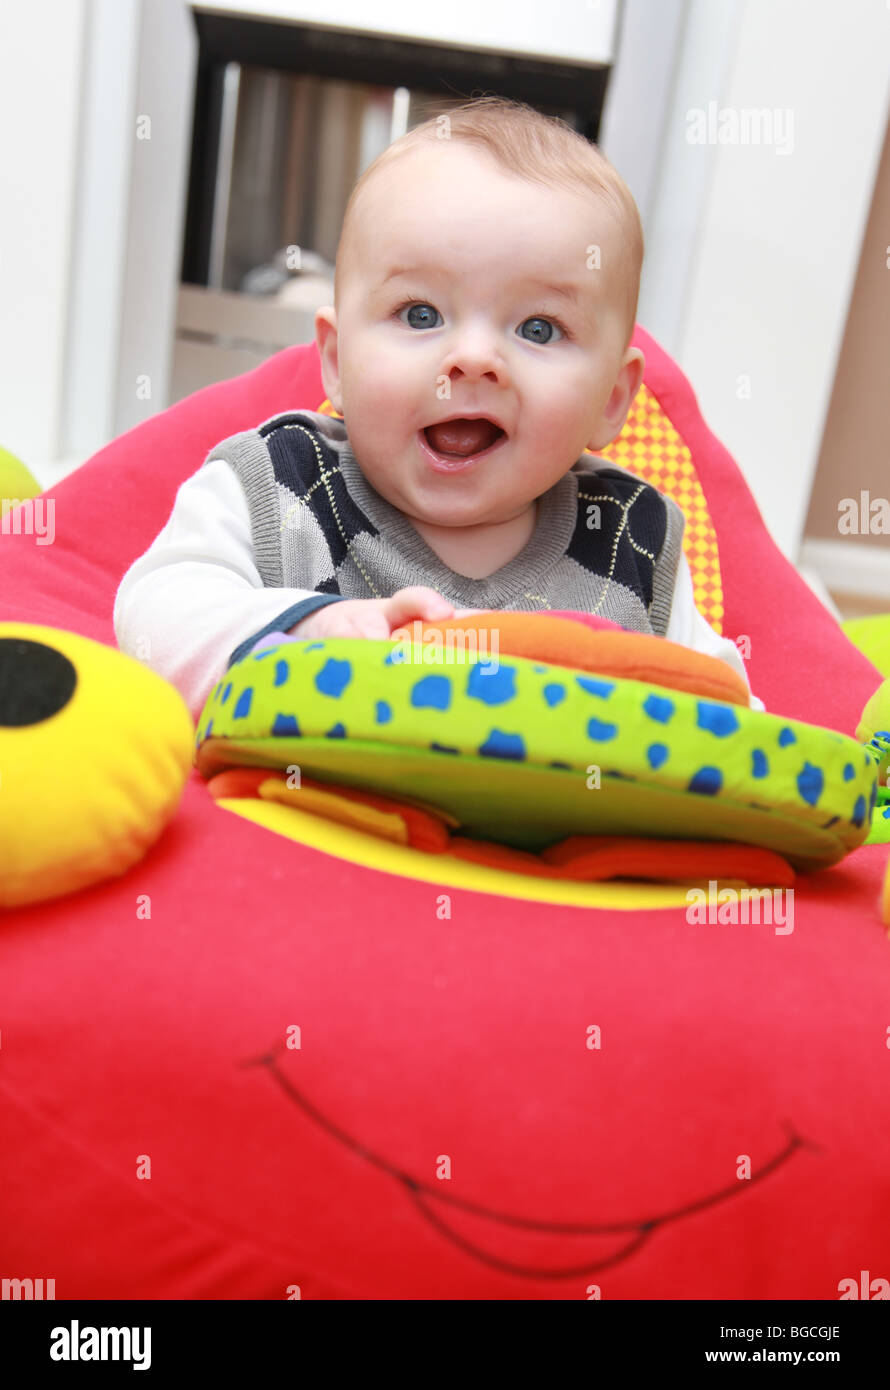 3 4 Month Old Baby Boy Playing With Toys In Cradle Chair Stock